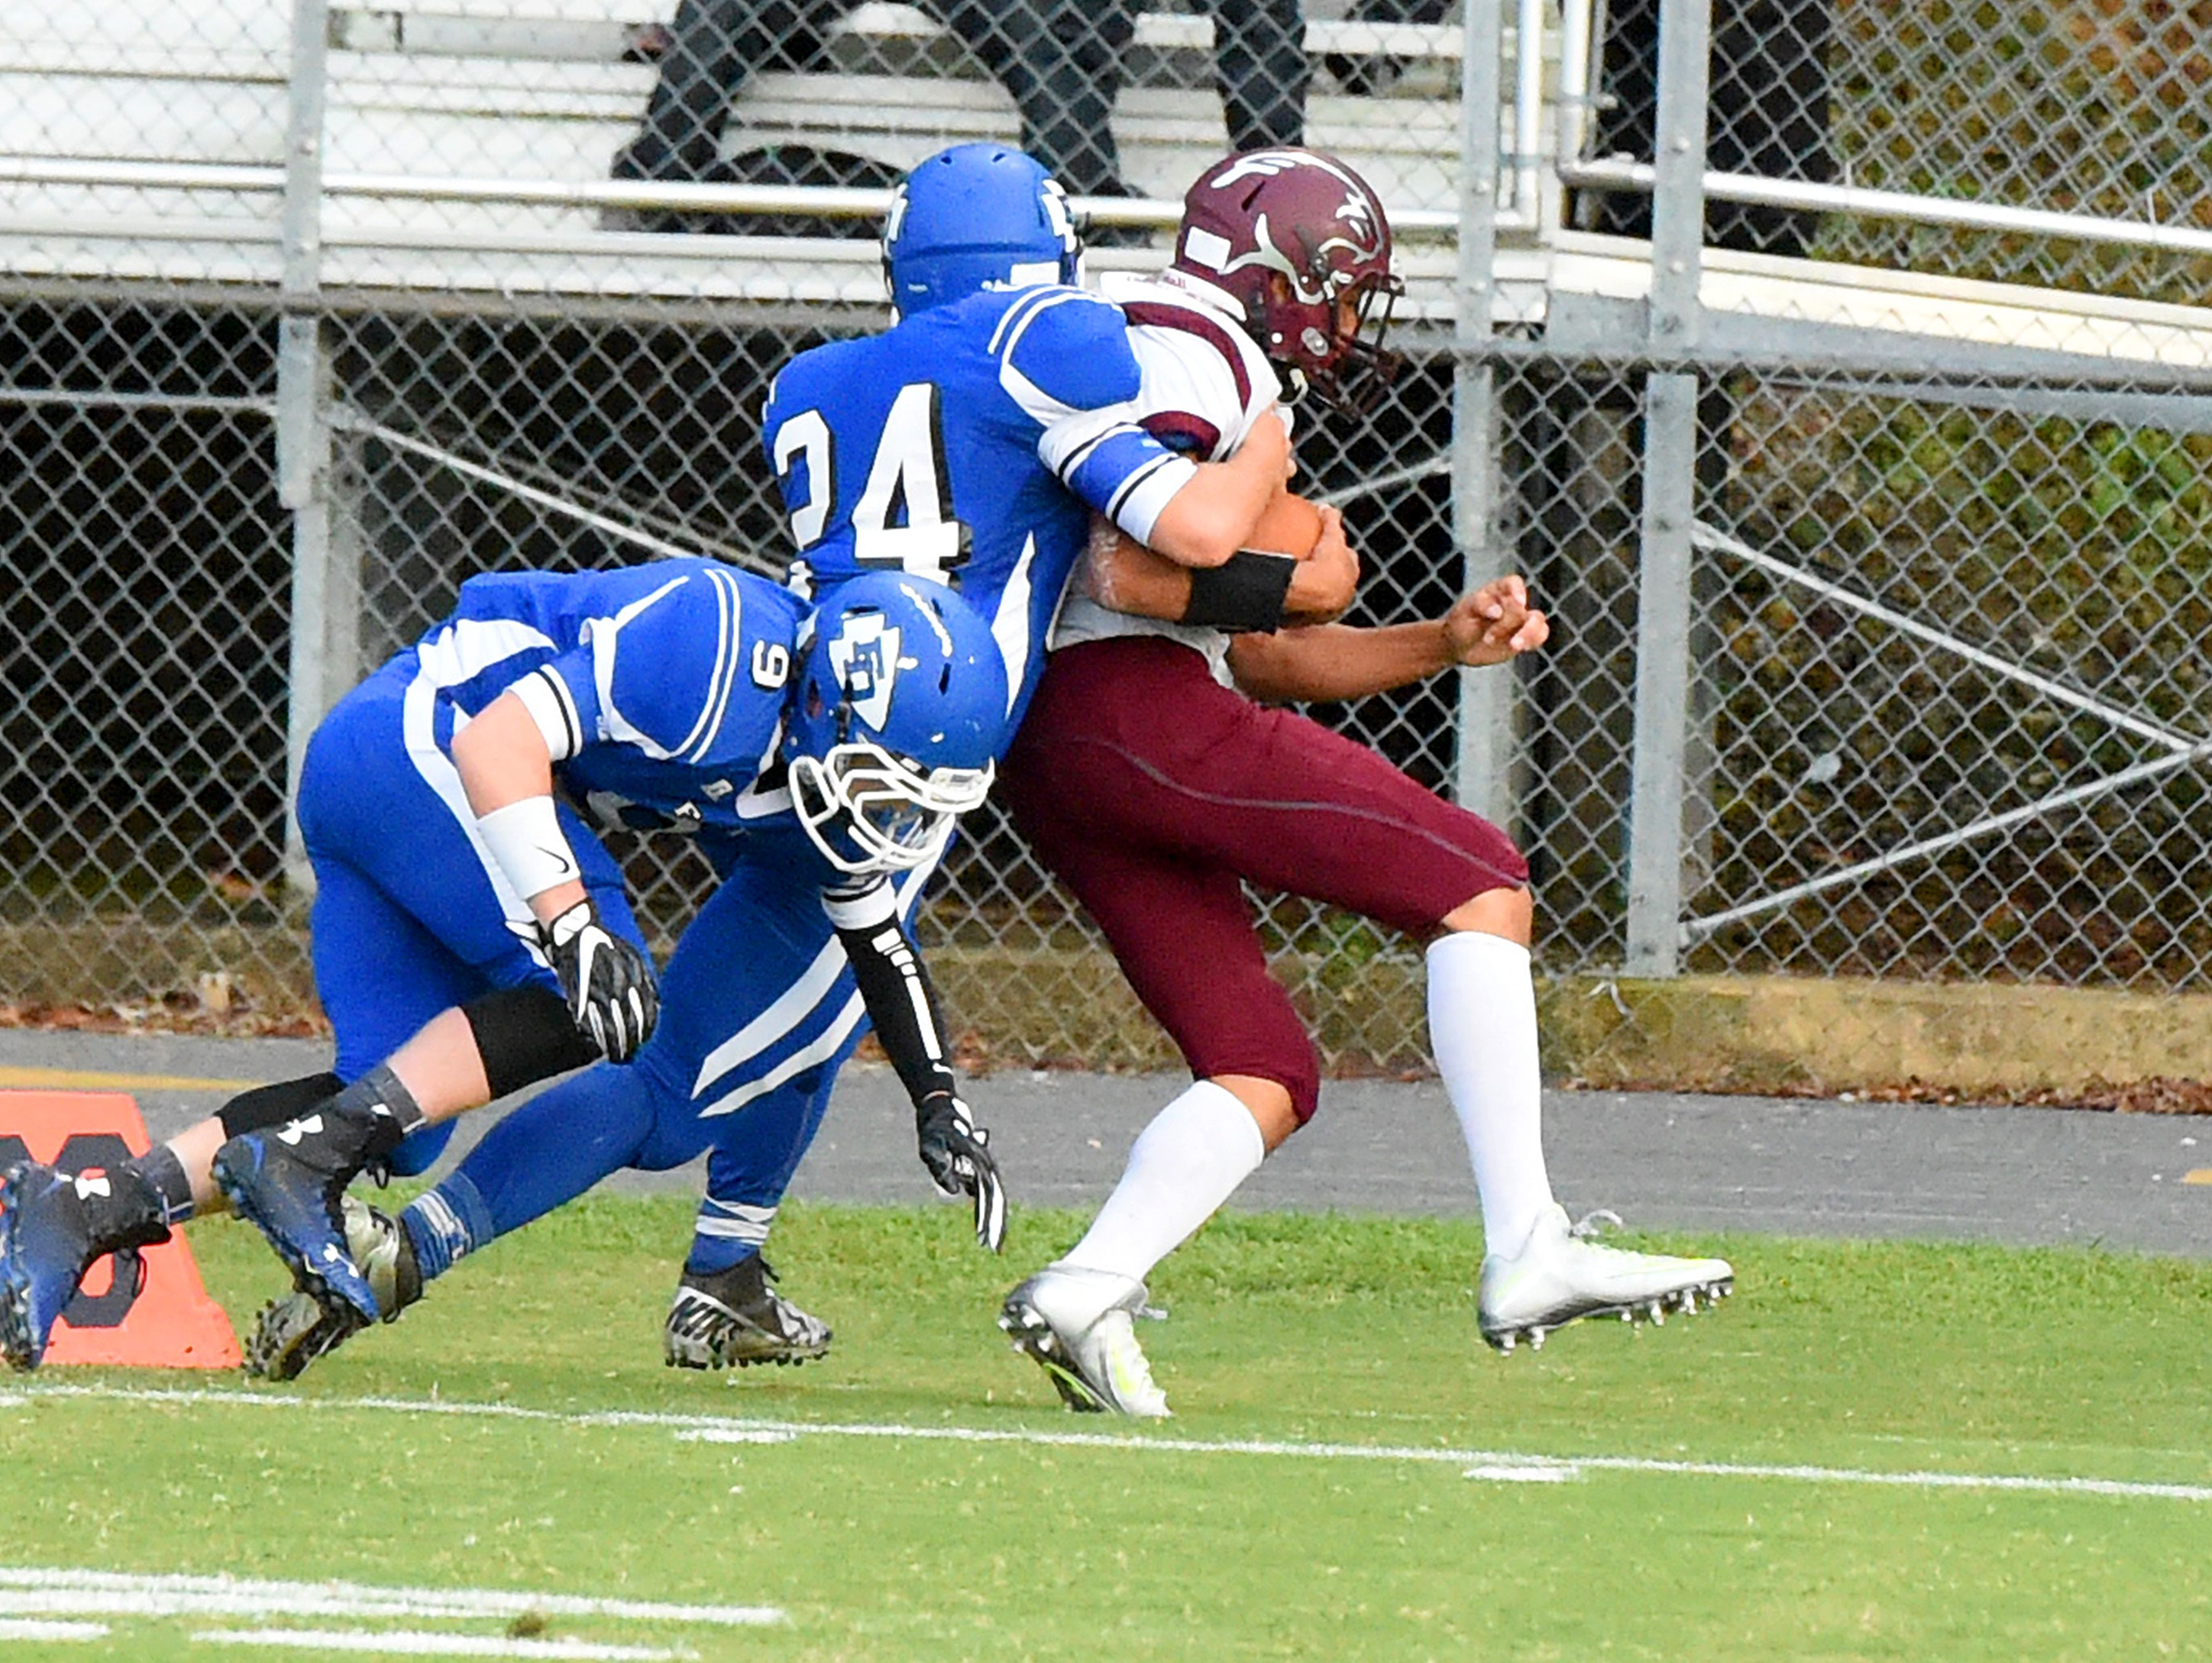 Stuarts Draft's Xzavier Gunn fights for more yards as he is slowly brought down by Fort Defiance's Steven Chittum and Matthew Wonderley during a football game played in Fort Defiance on Friday, Sept. 2, 2016.